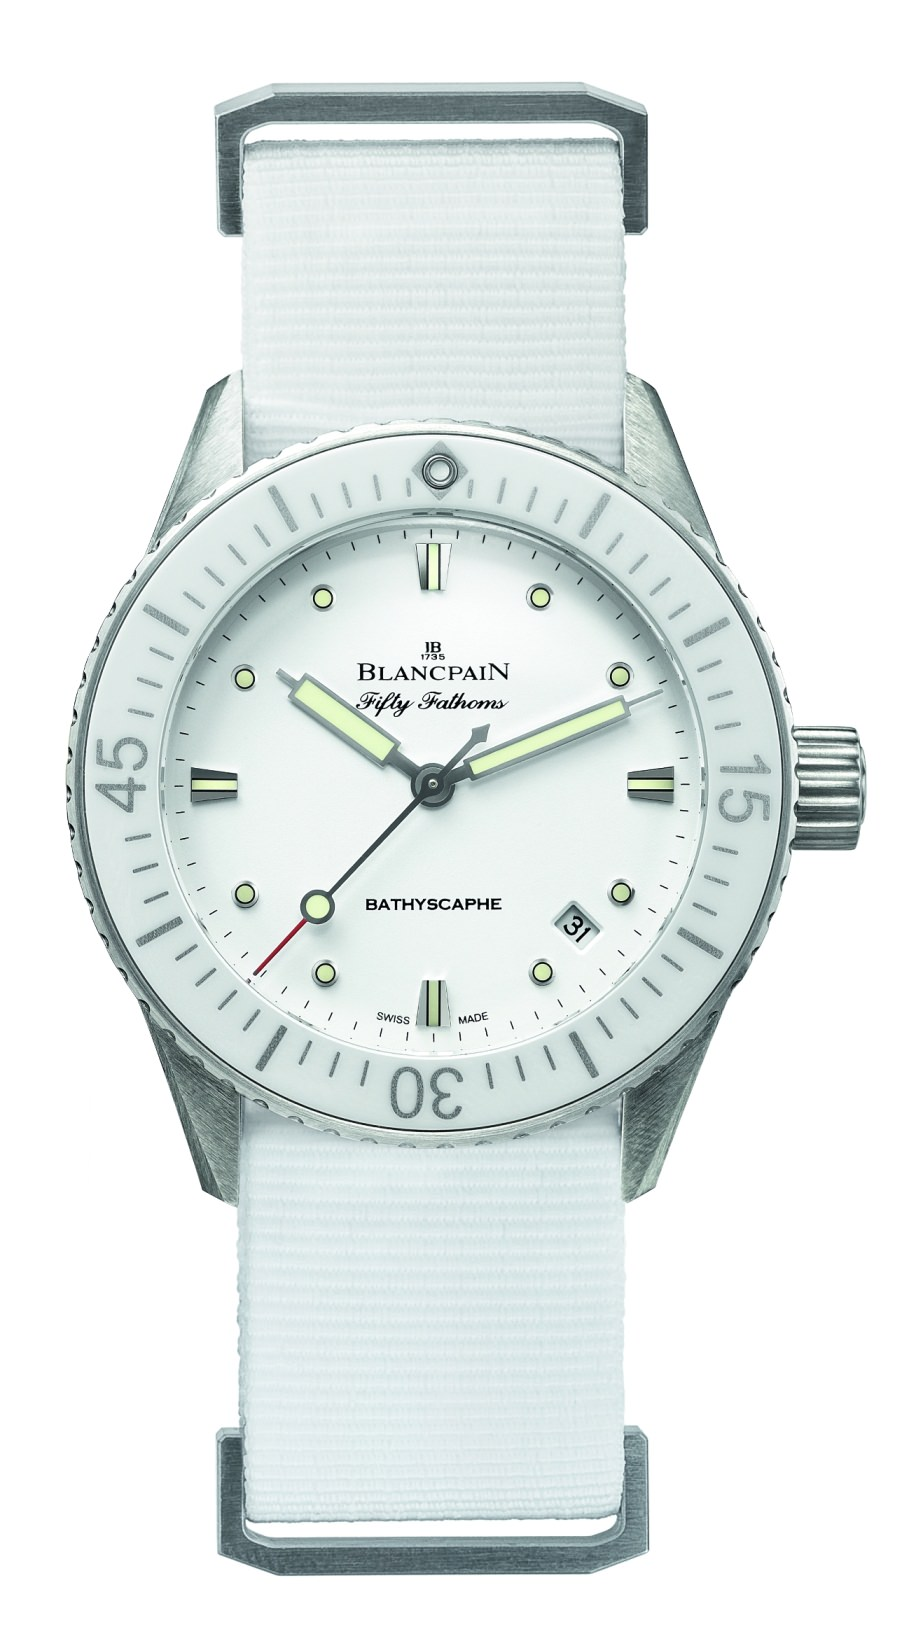 Blancpain Fifty Fathoms Bathyscaphe_5100-1127-NAW_A